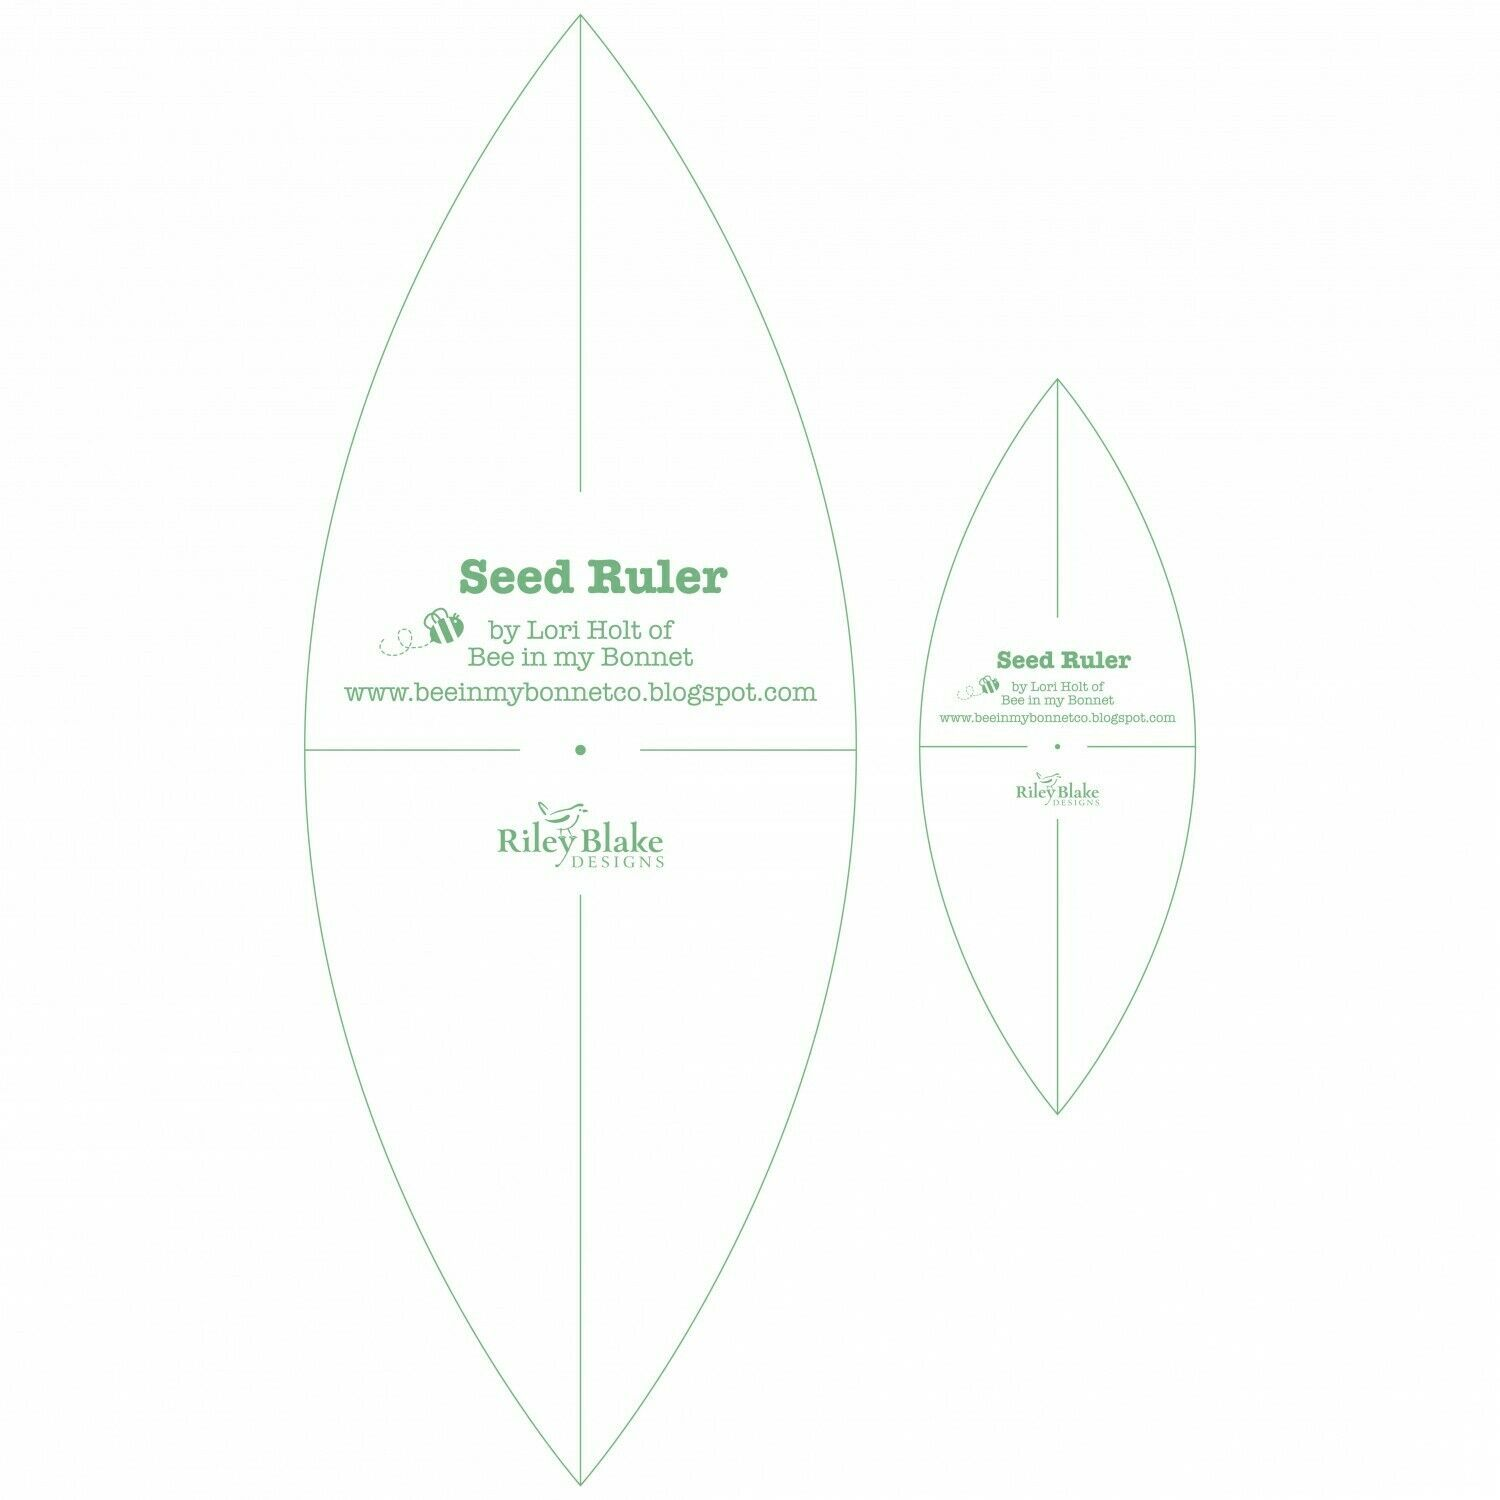 SEED RULER SET by Lori Holt